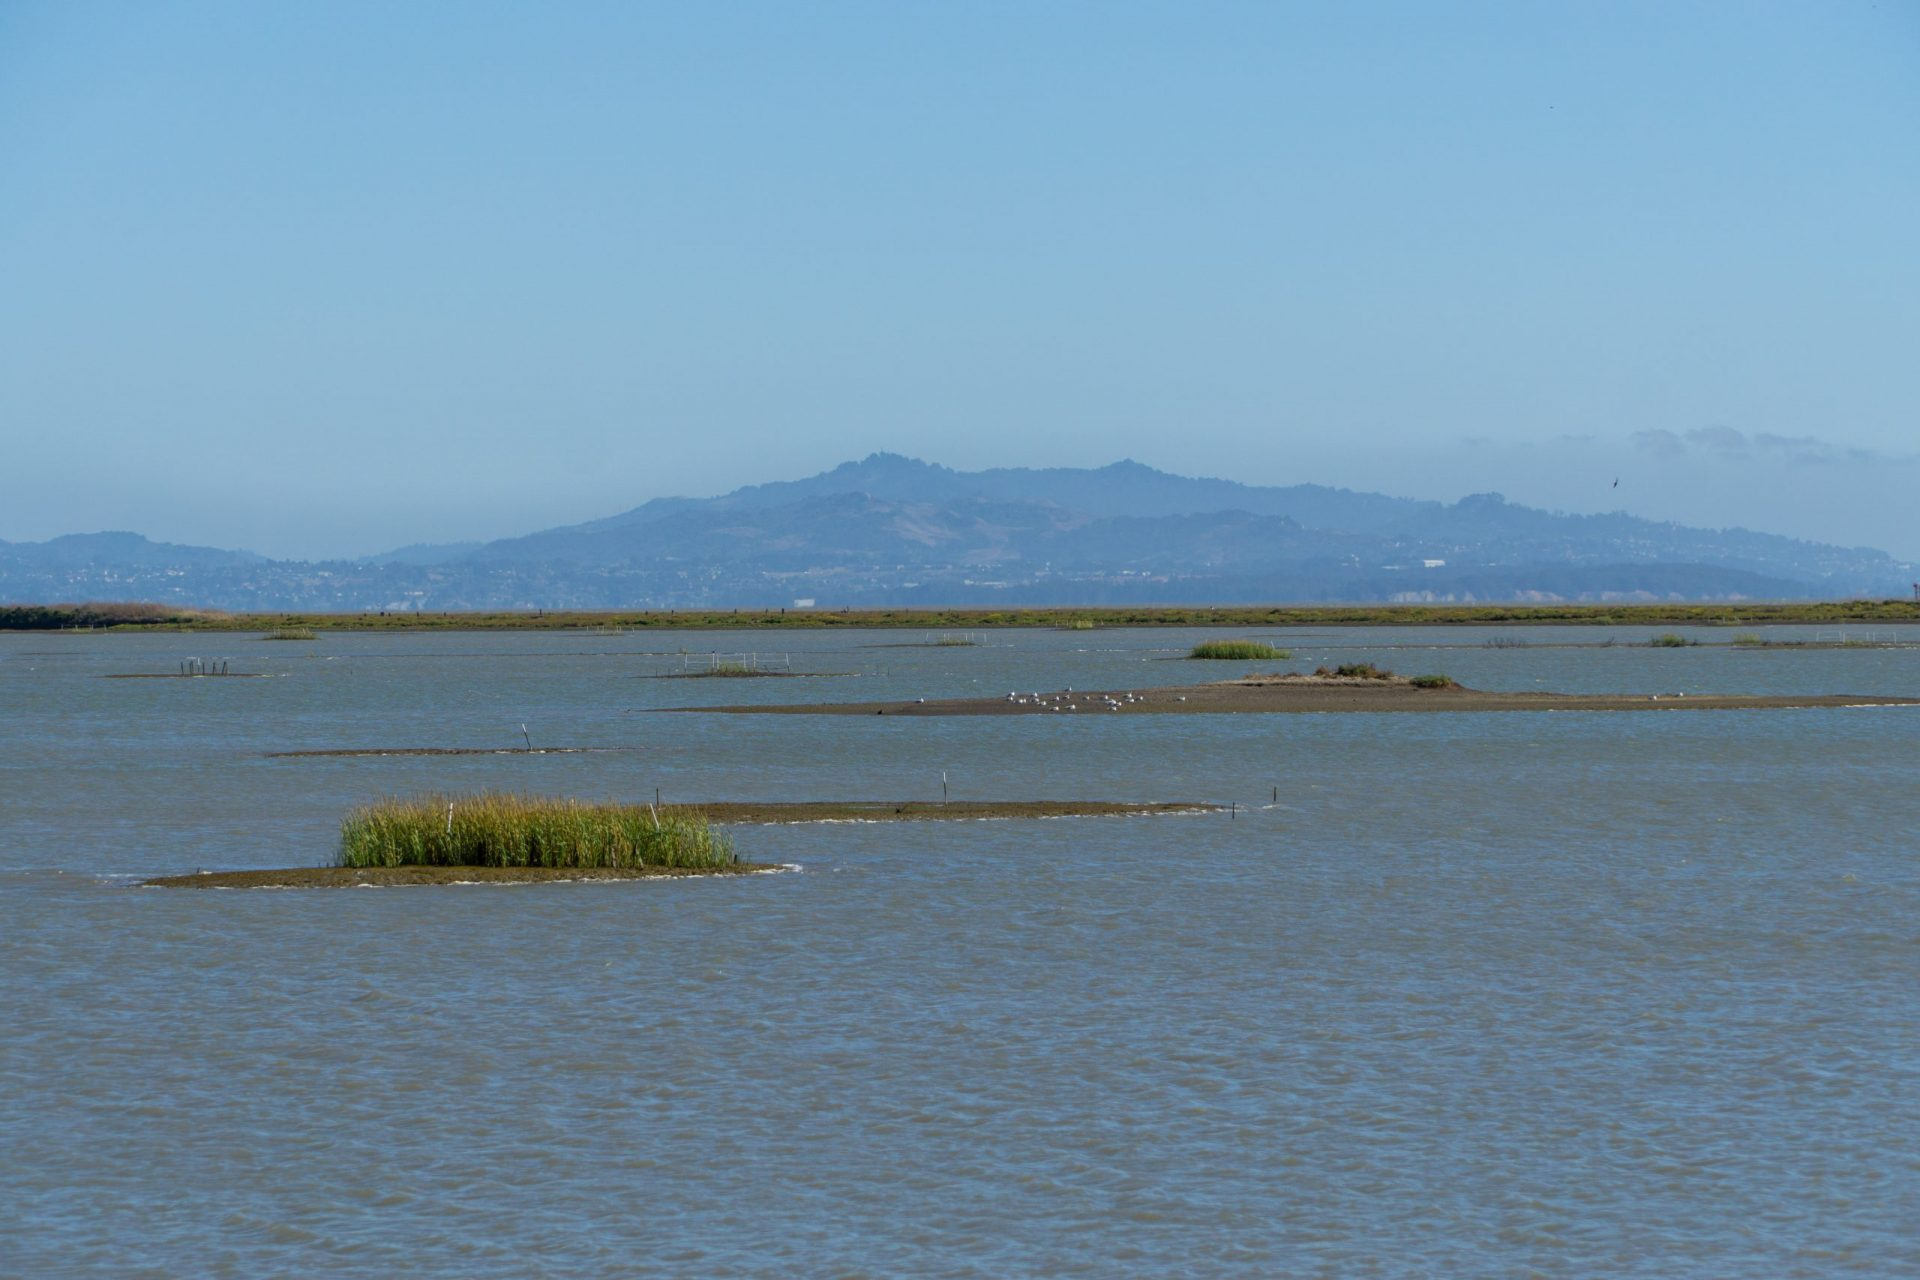 mud flats and bay with hills across the water